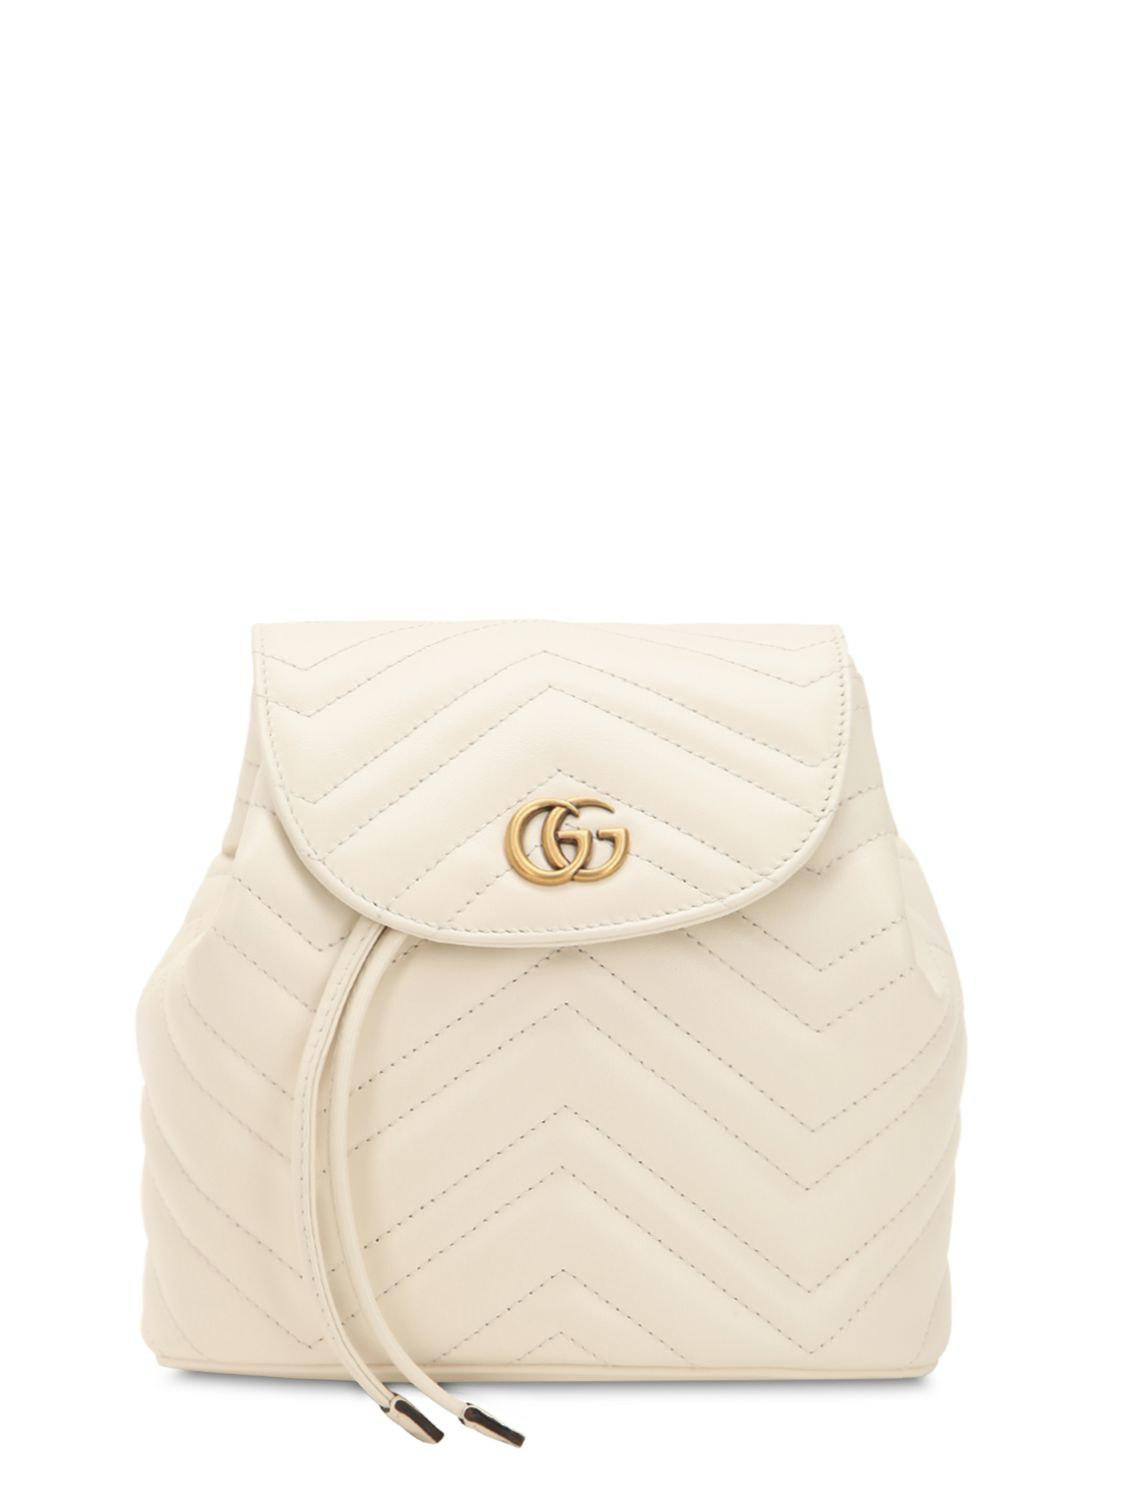 189f7a6c55b8 Gucci Mini Gg Marmont Leather Backpack in White - Lyst